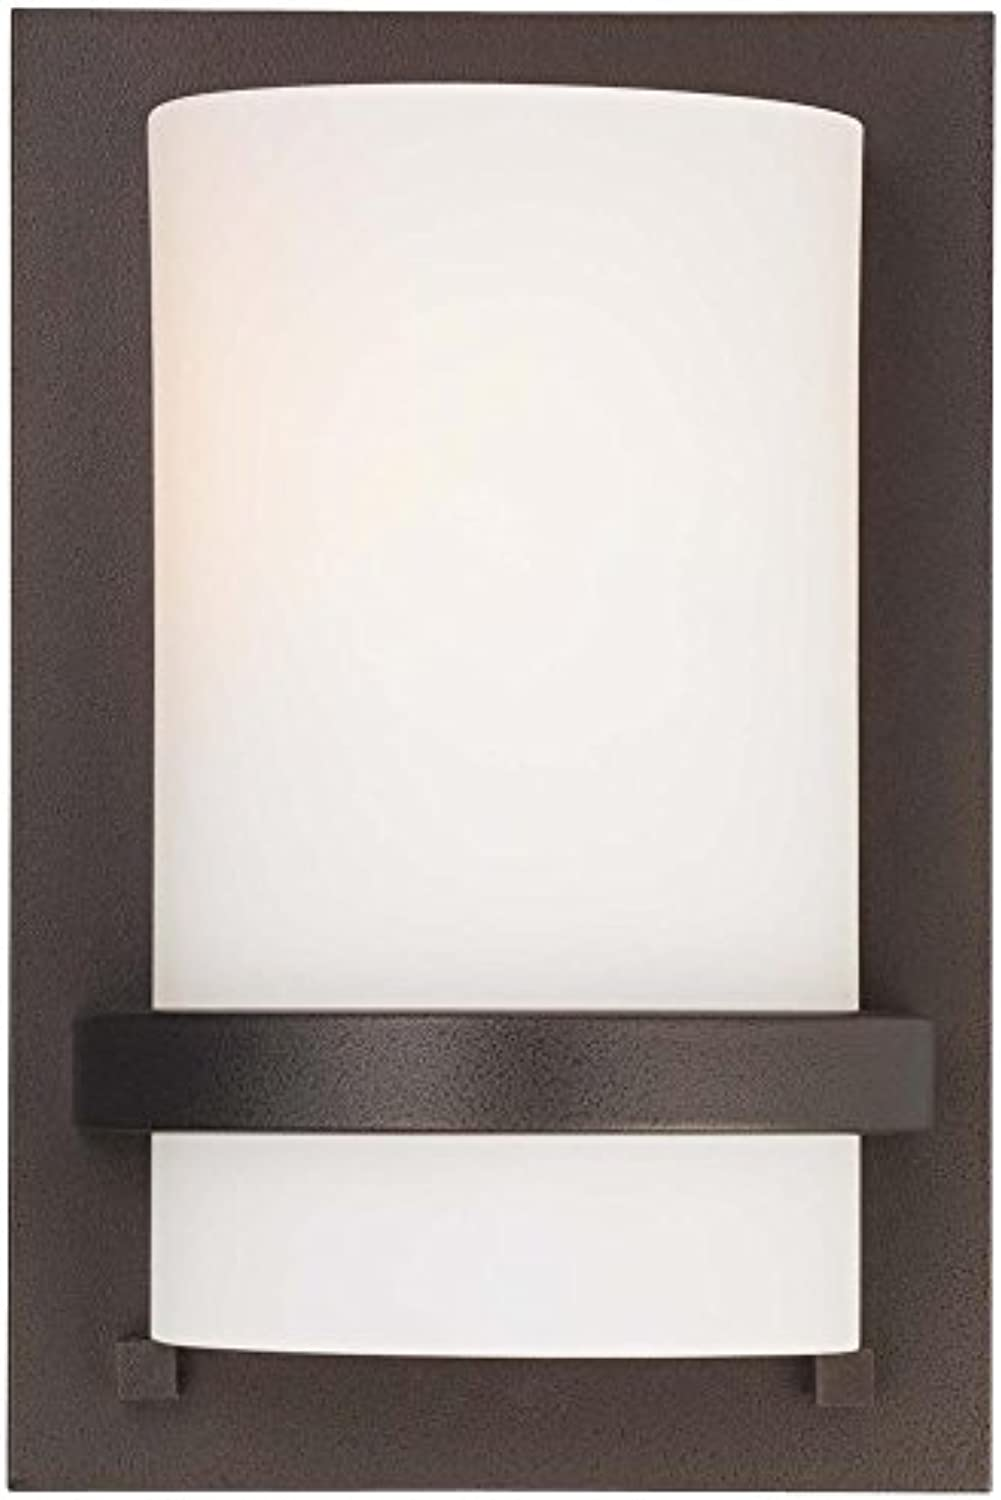 Minka Lavery 342-172 1 Light Wall Sconce, Smoked Iron Finish